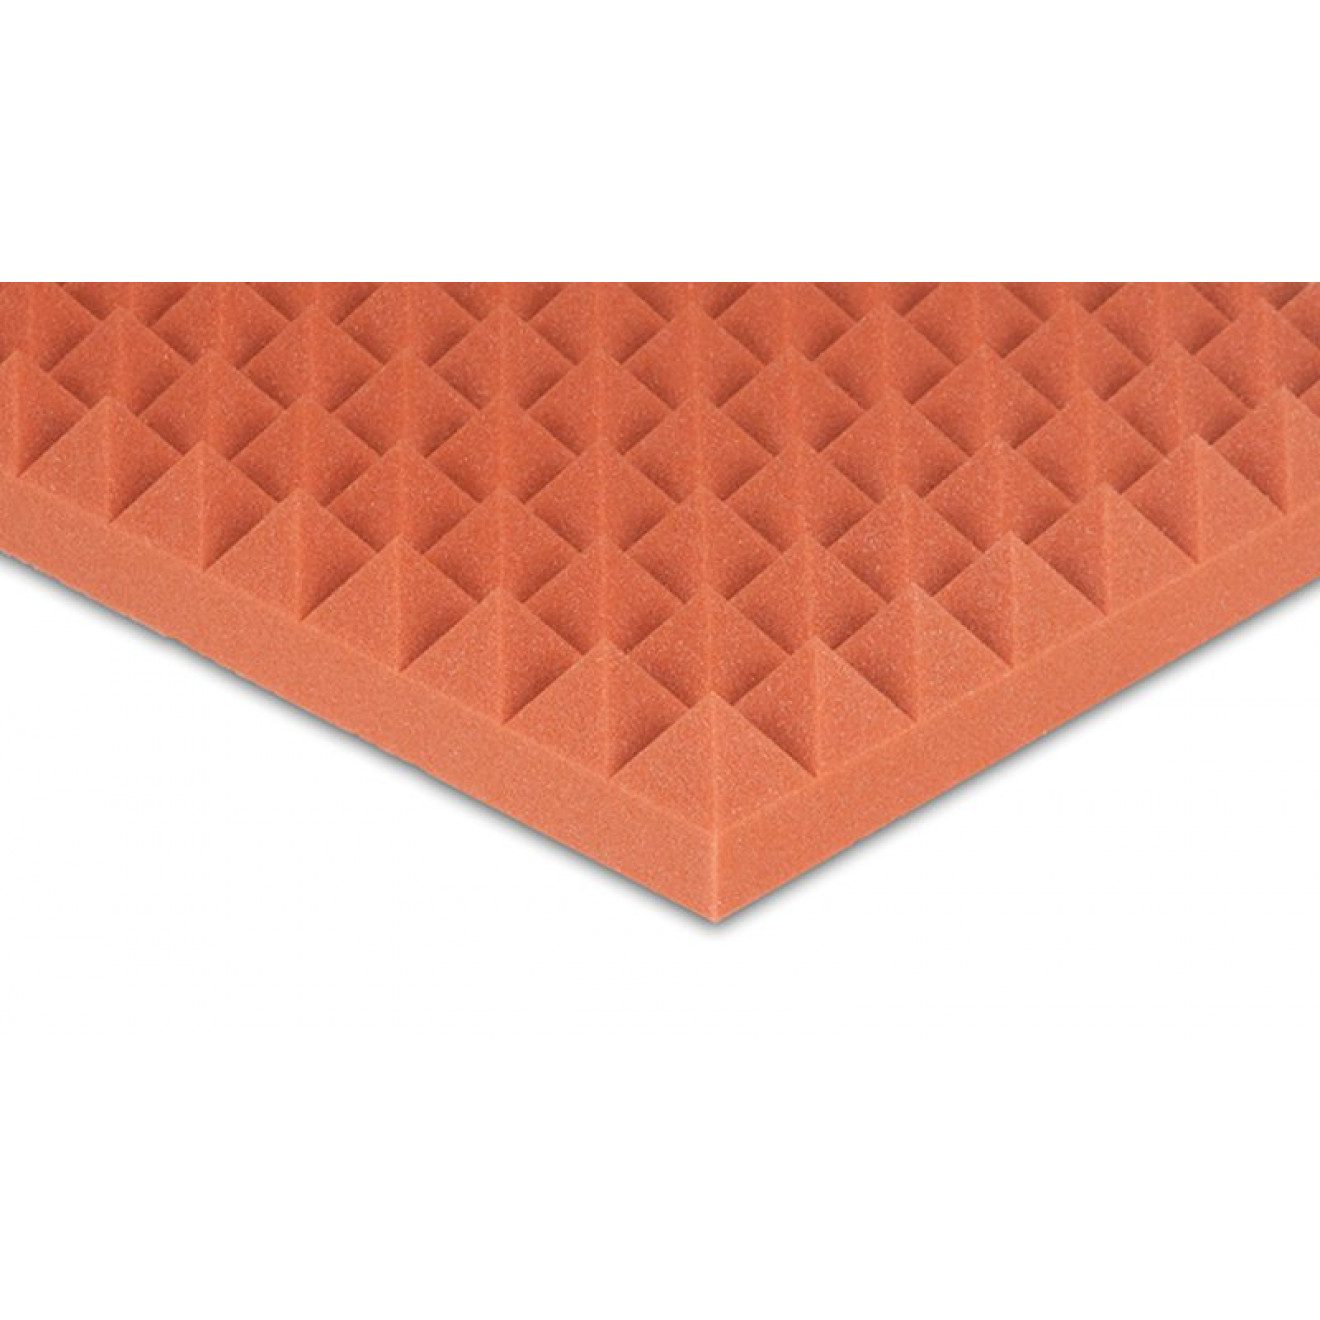 Pyramidenschaumstoff Colorline 95 x 45 x 7cm orange PU Schaumstoff